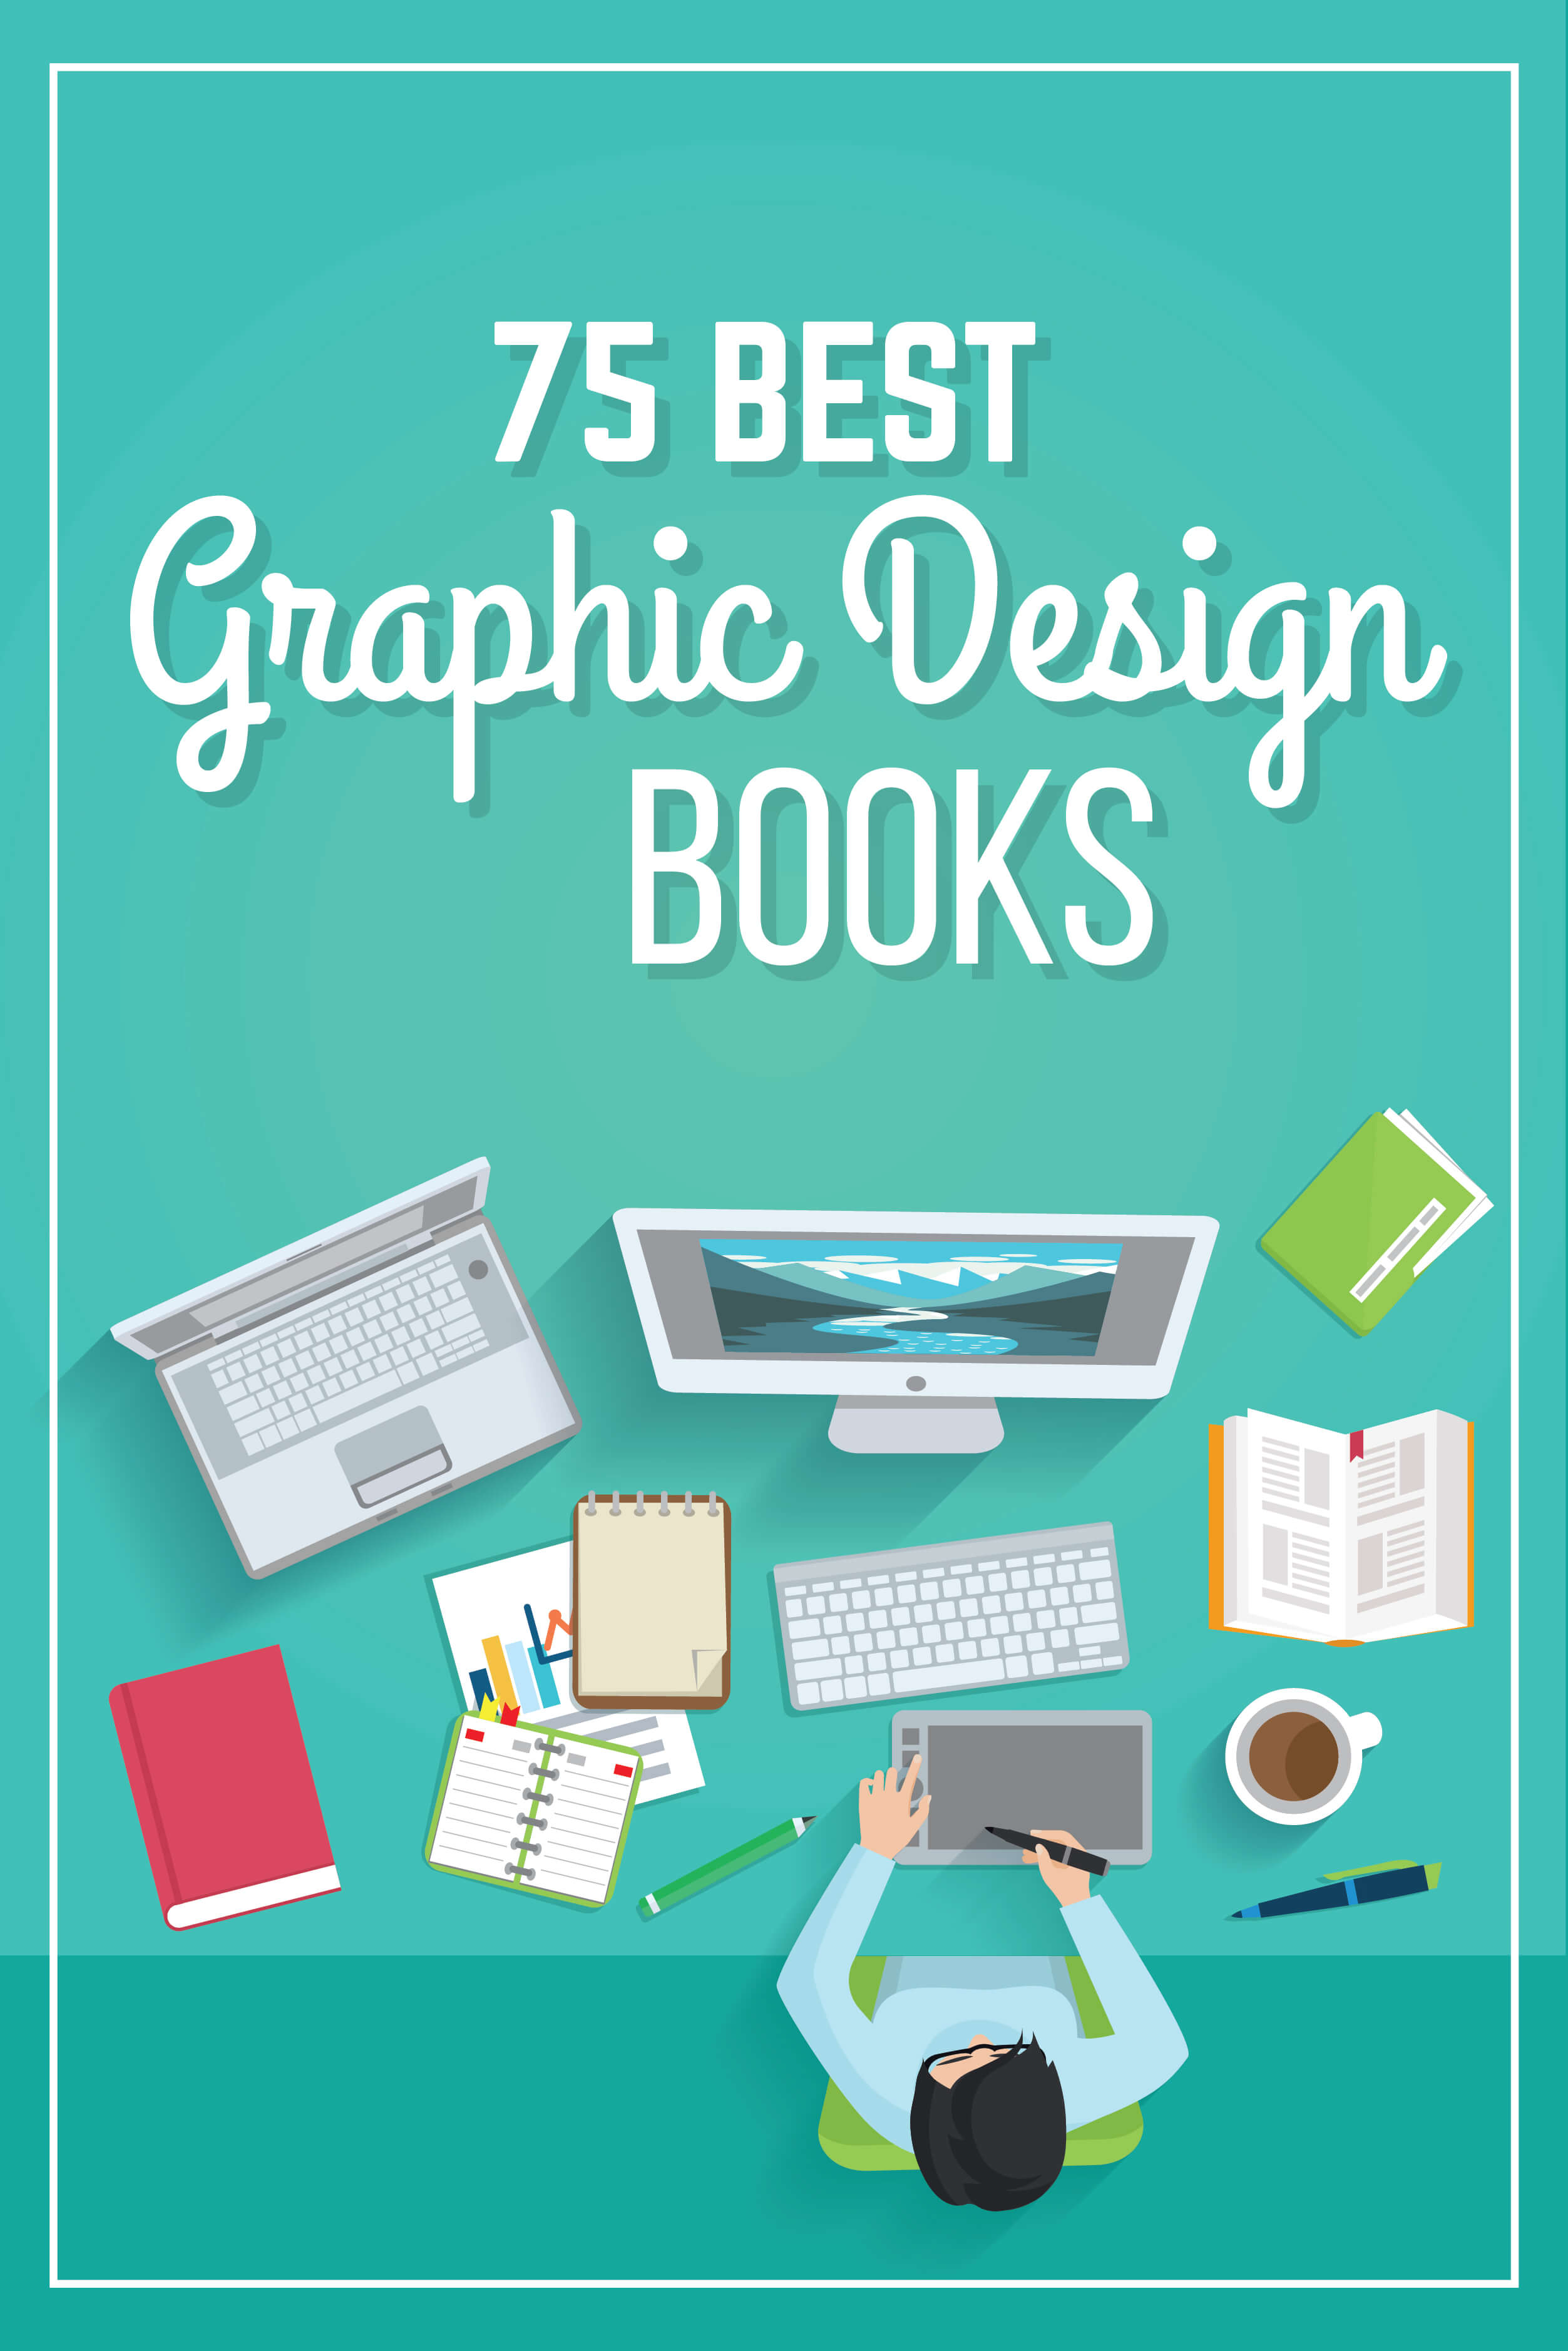 75 Best Graphic Design Books